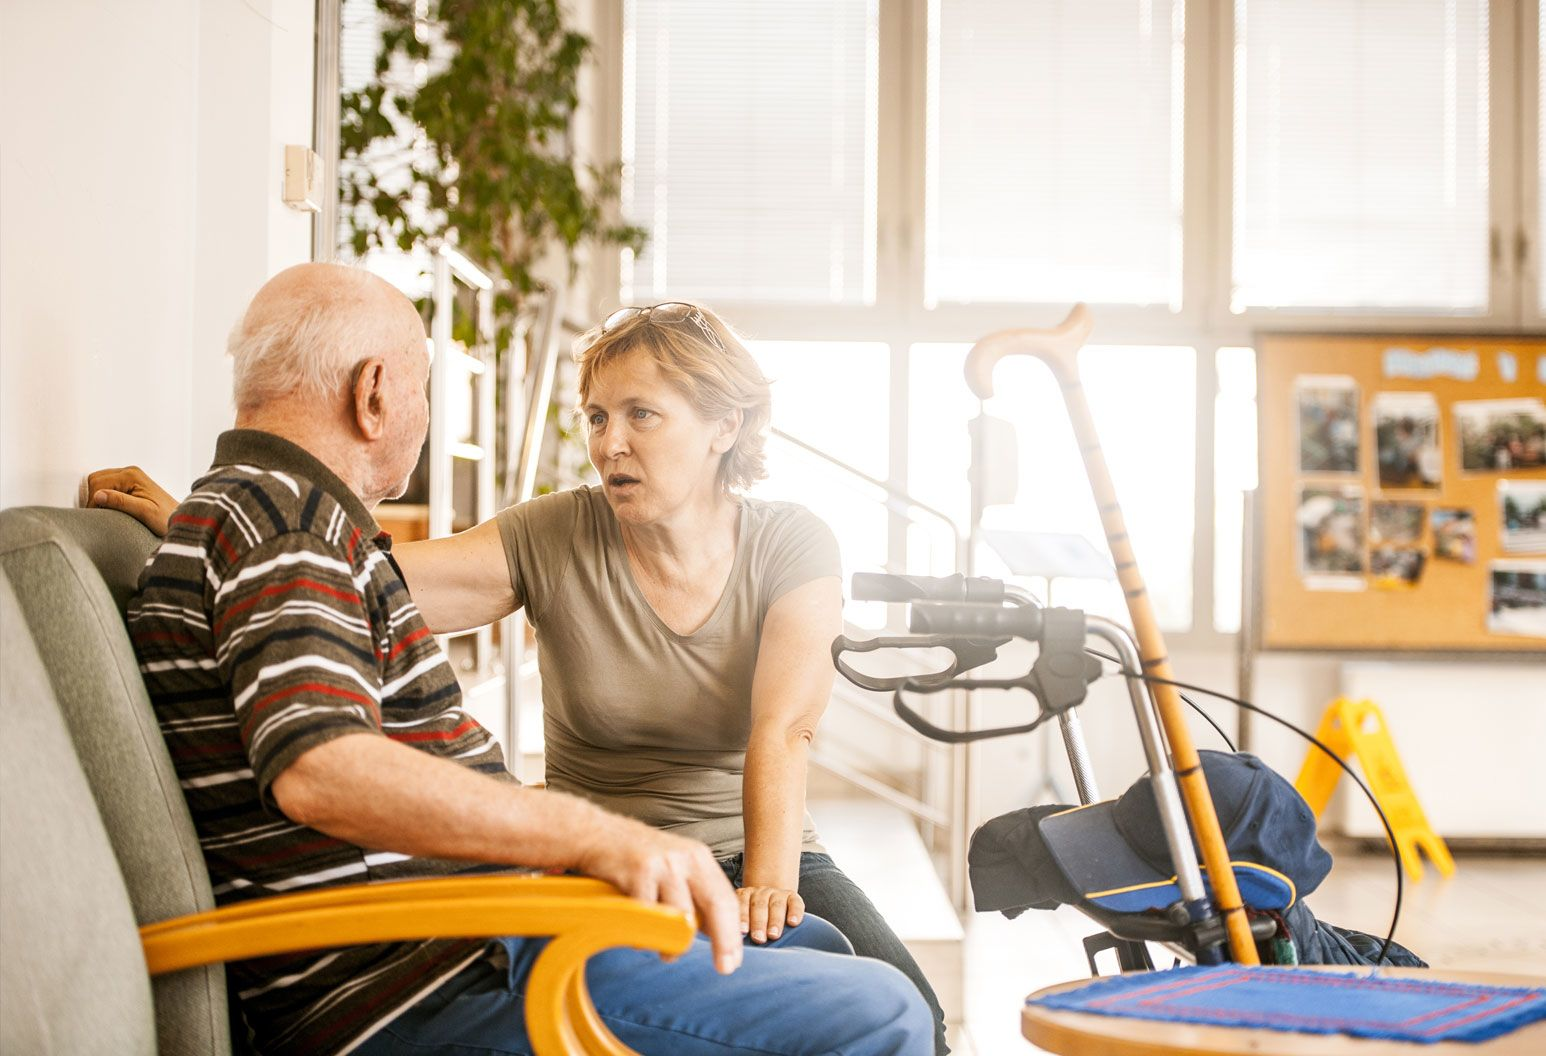 An elderly man sits in a chair next to a middle aged woman. The woman is speaking. They are in a brightly-lit space. There is a cane and walking aid next to them.